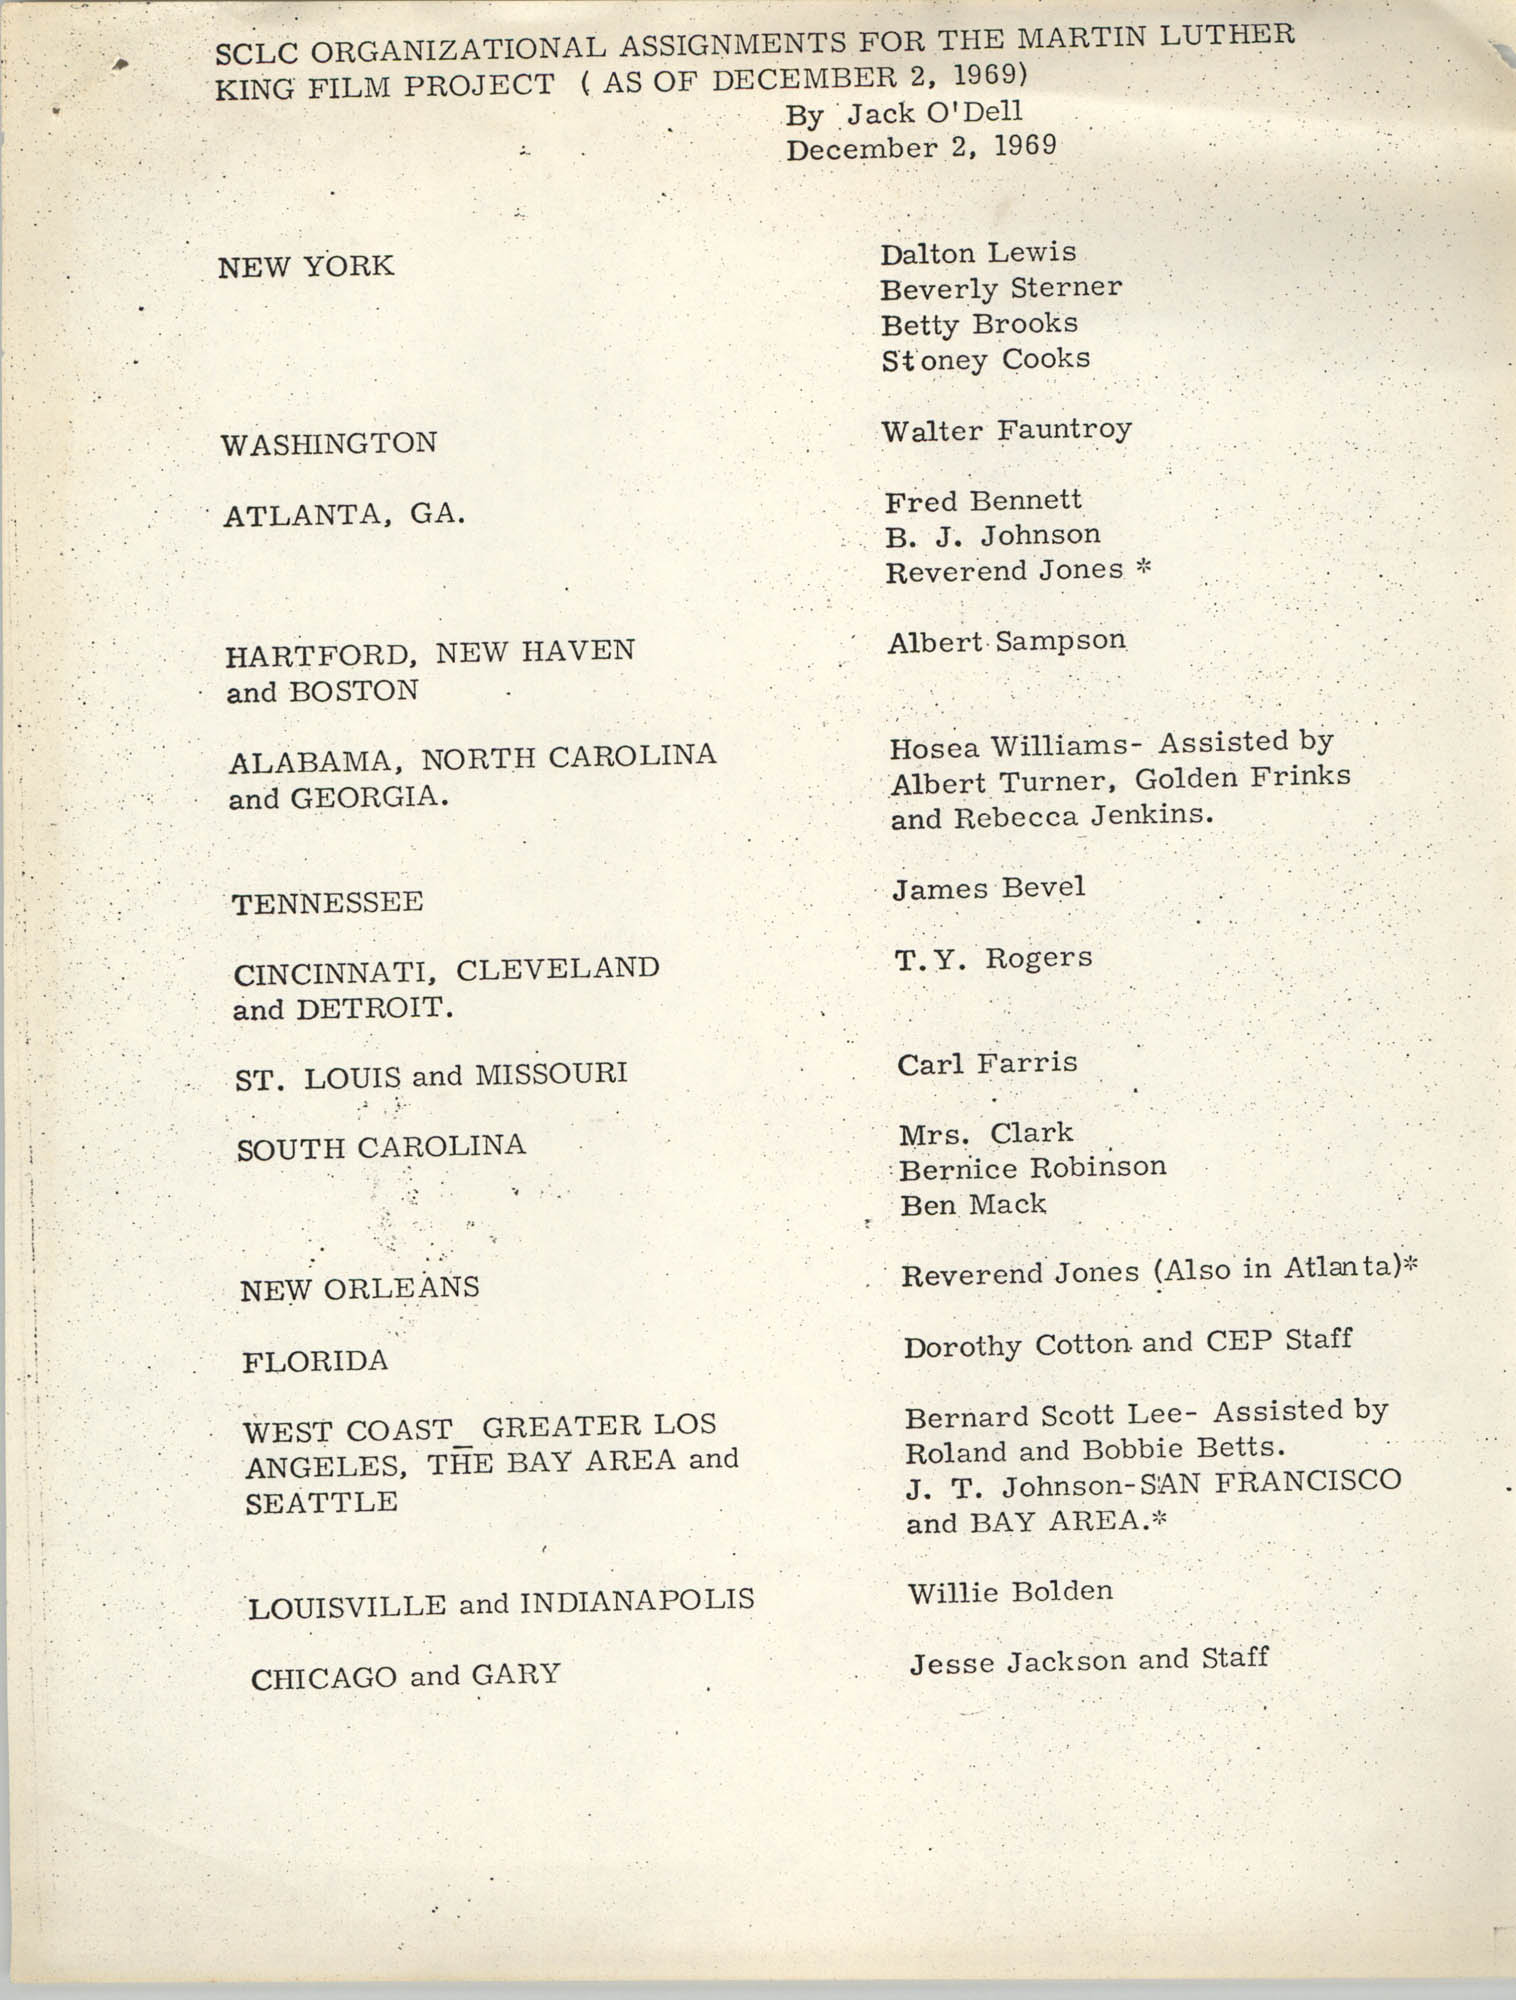 SCLC Organizational Assignments for the Martin Luther King Film Project